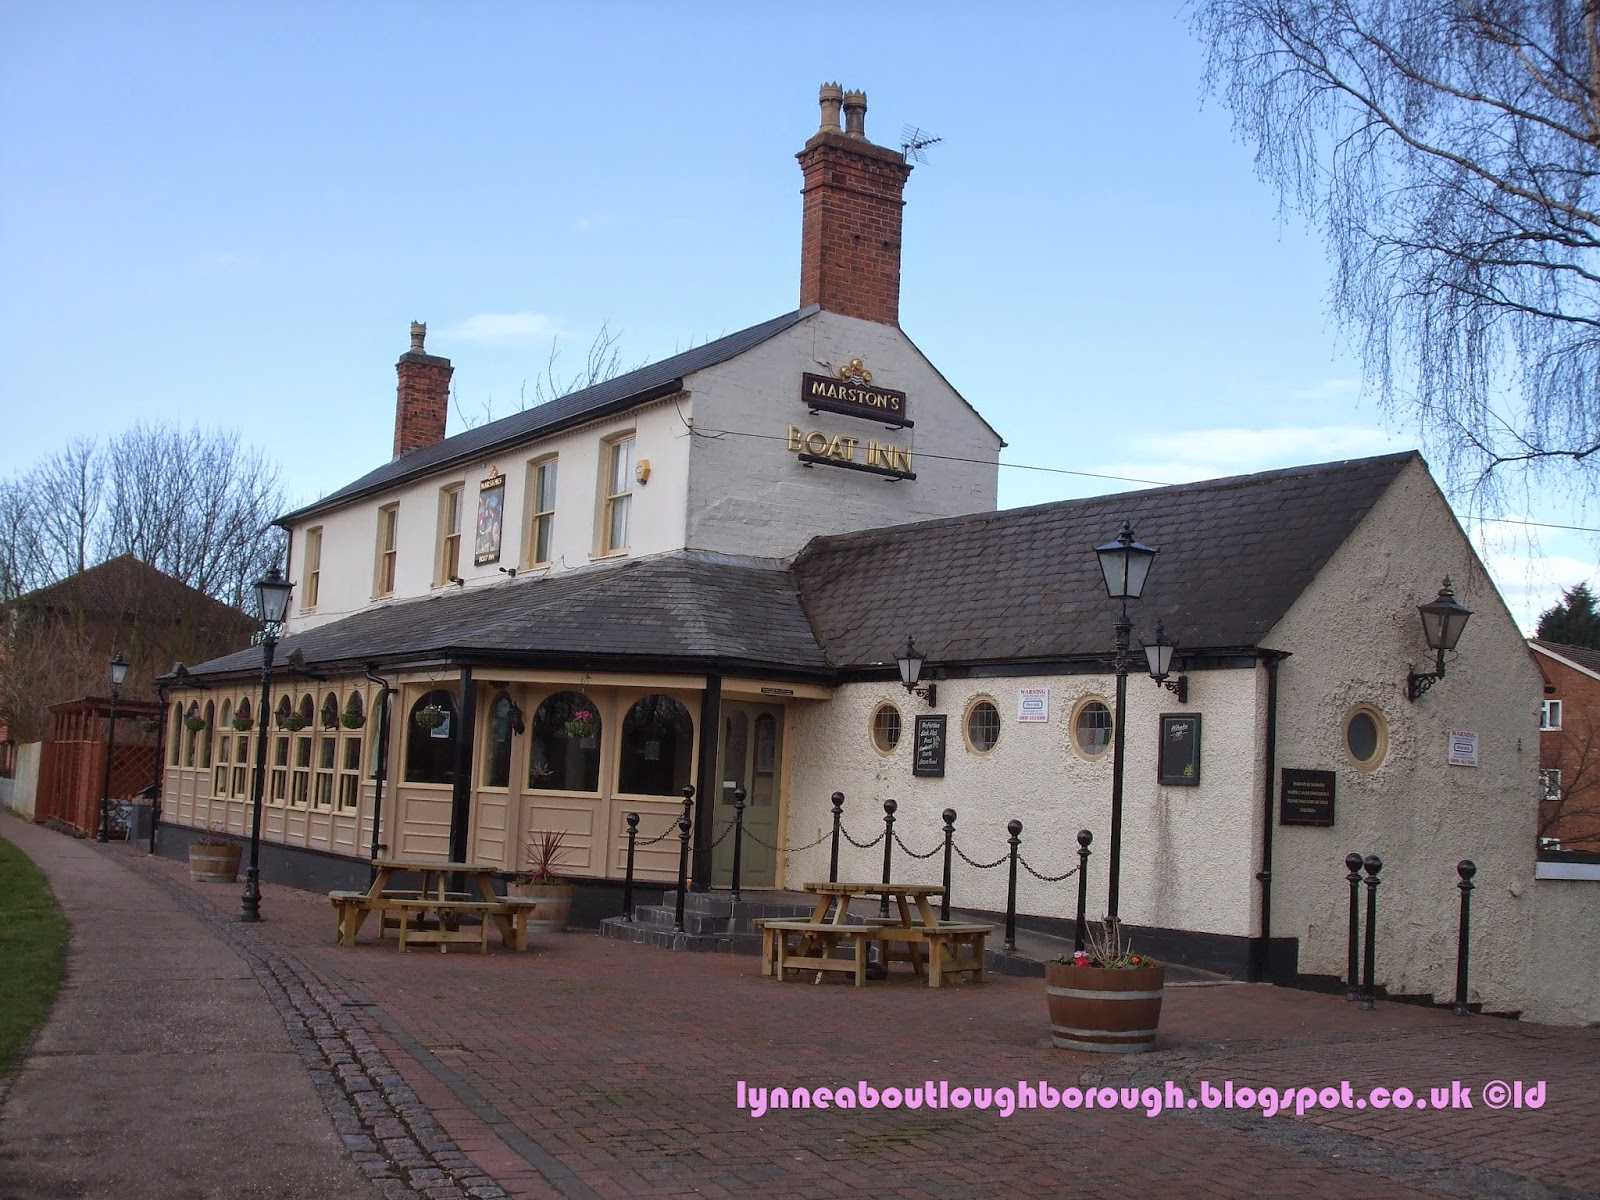 http://lynneaboutloughborough.blogspot.co.uk/2015/02/pub-quiz.html